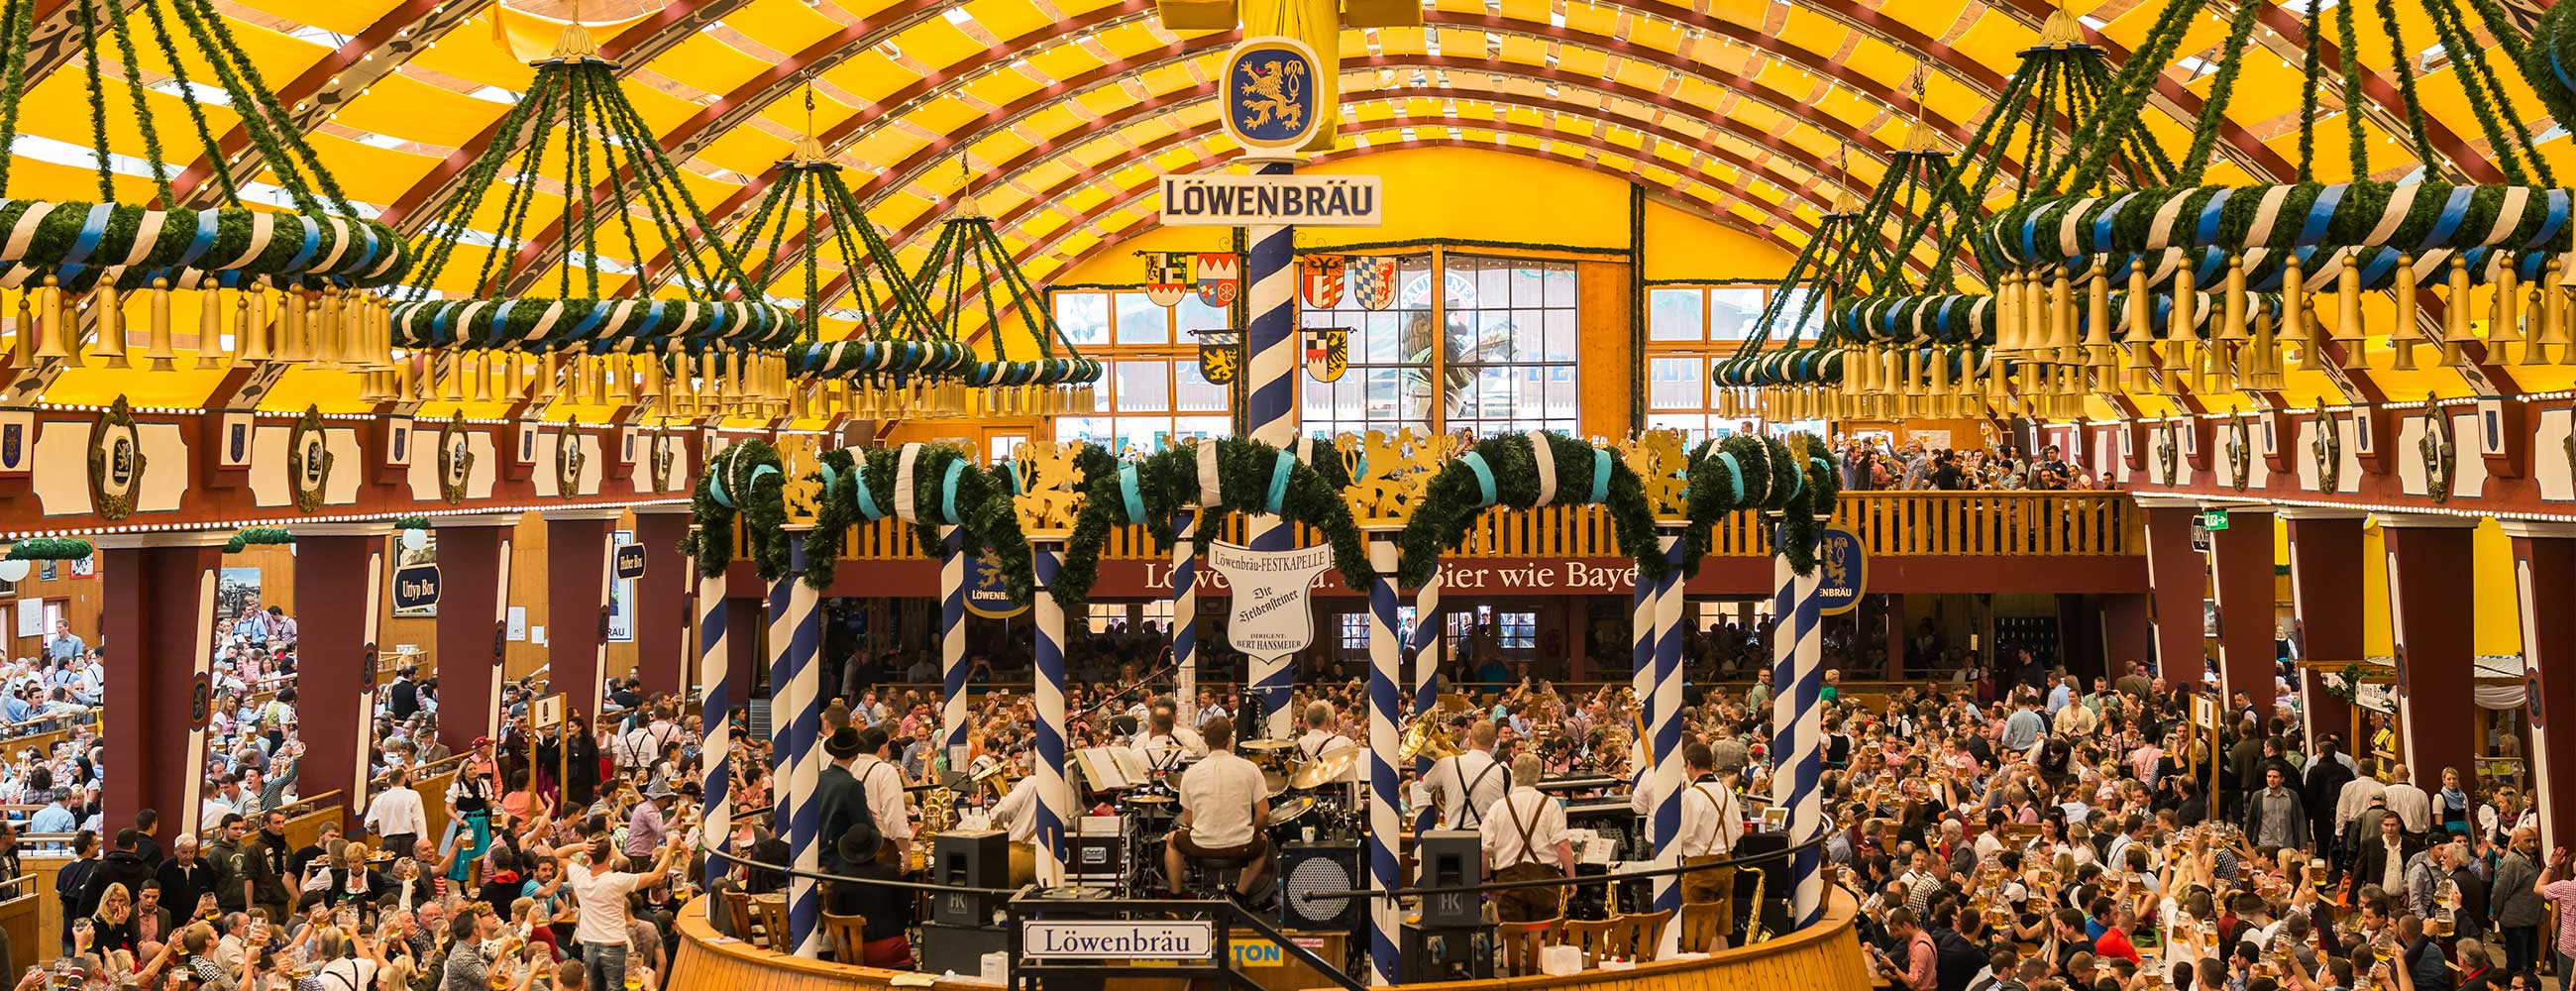 oktoberfest-a-different-side-to-the-largest-beer-fest